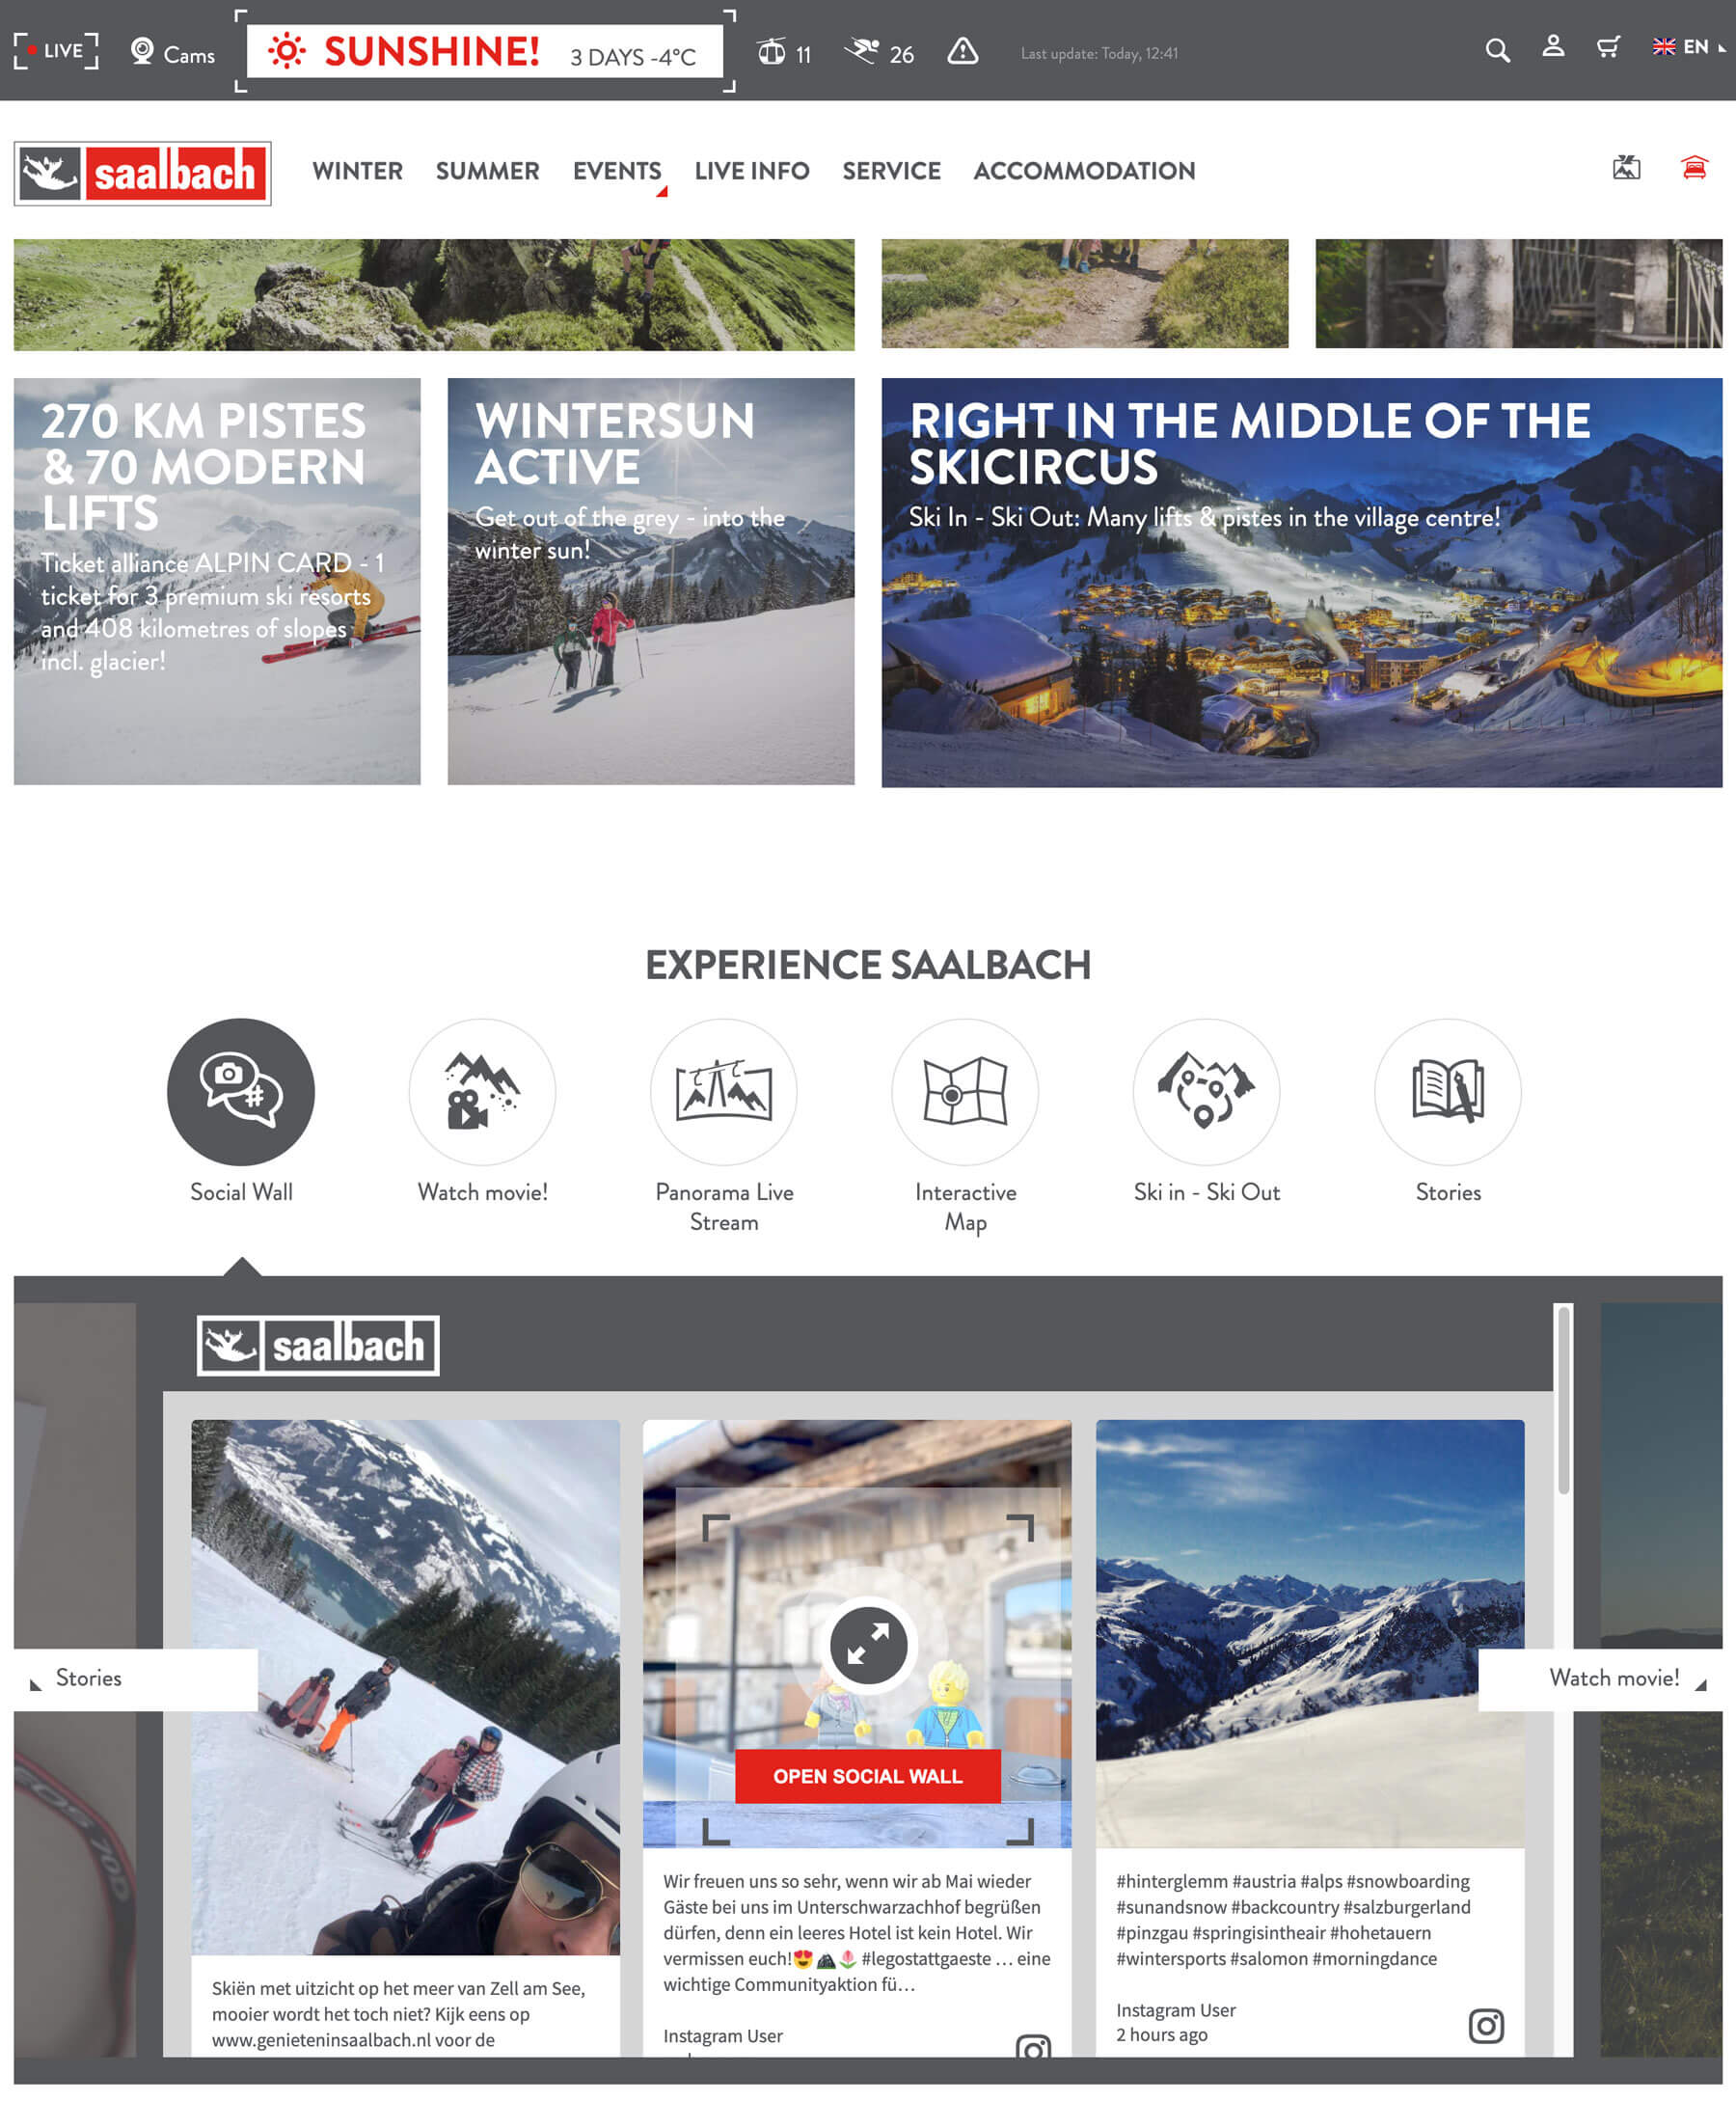 The social wall embedded on the English-language version of the Saalbach.com website.